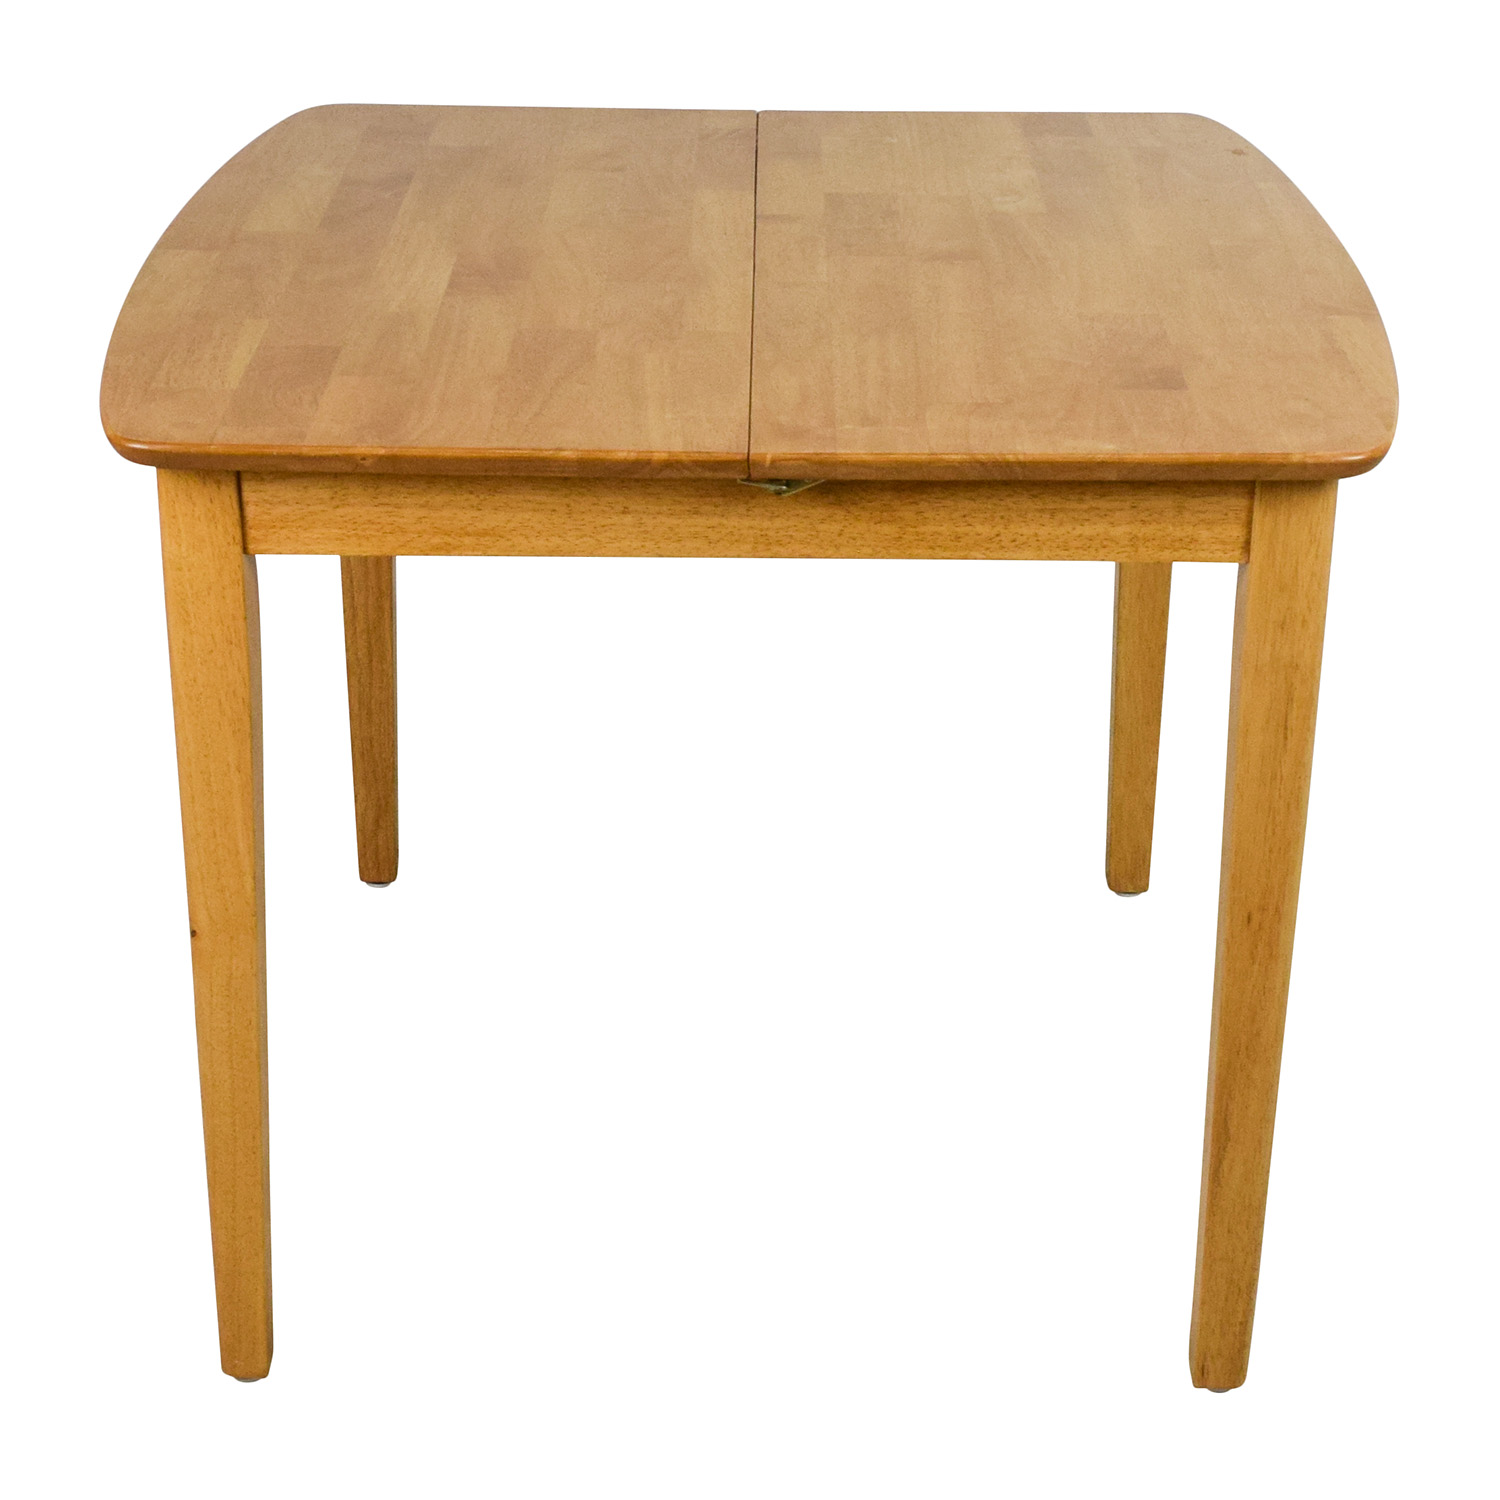 shop Unknown Solid Wood Extension Dining Table online